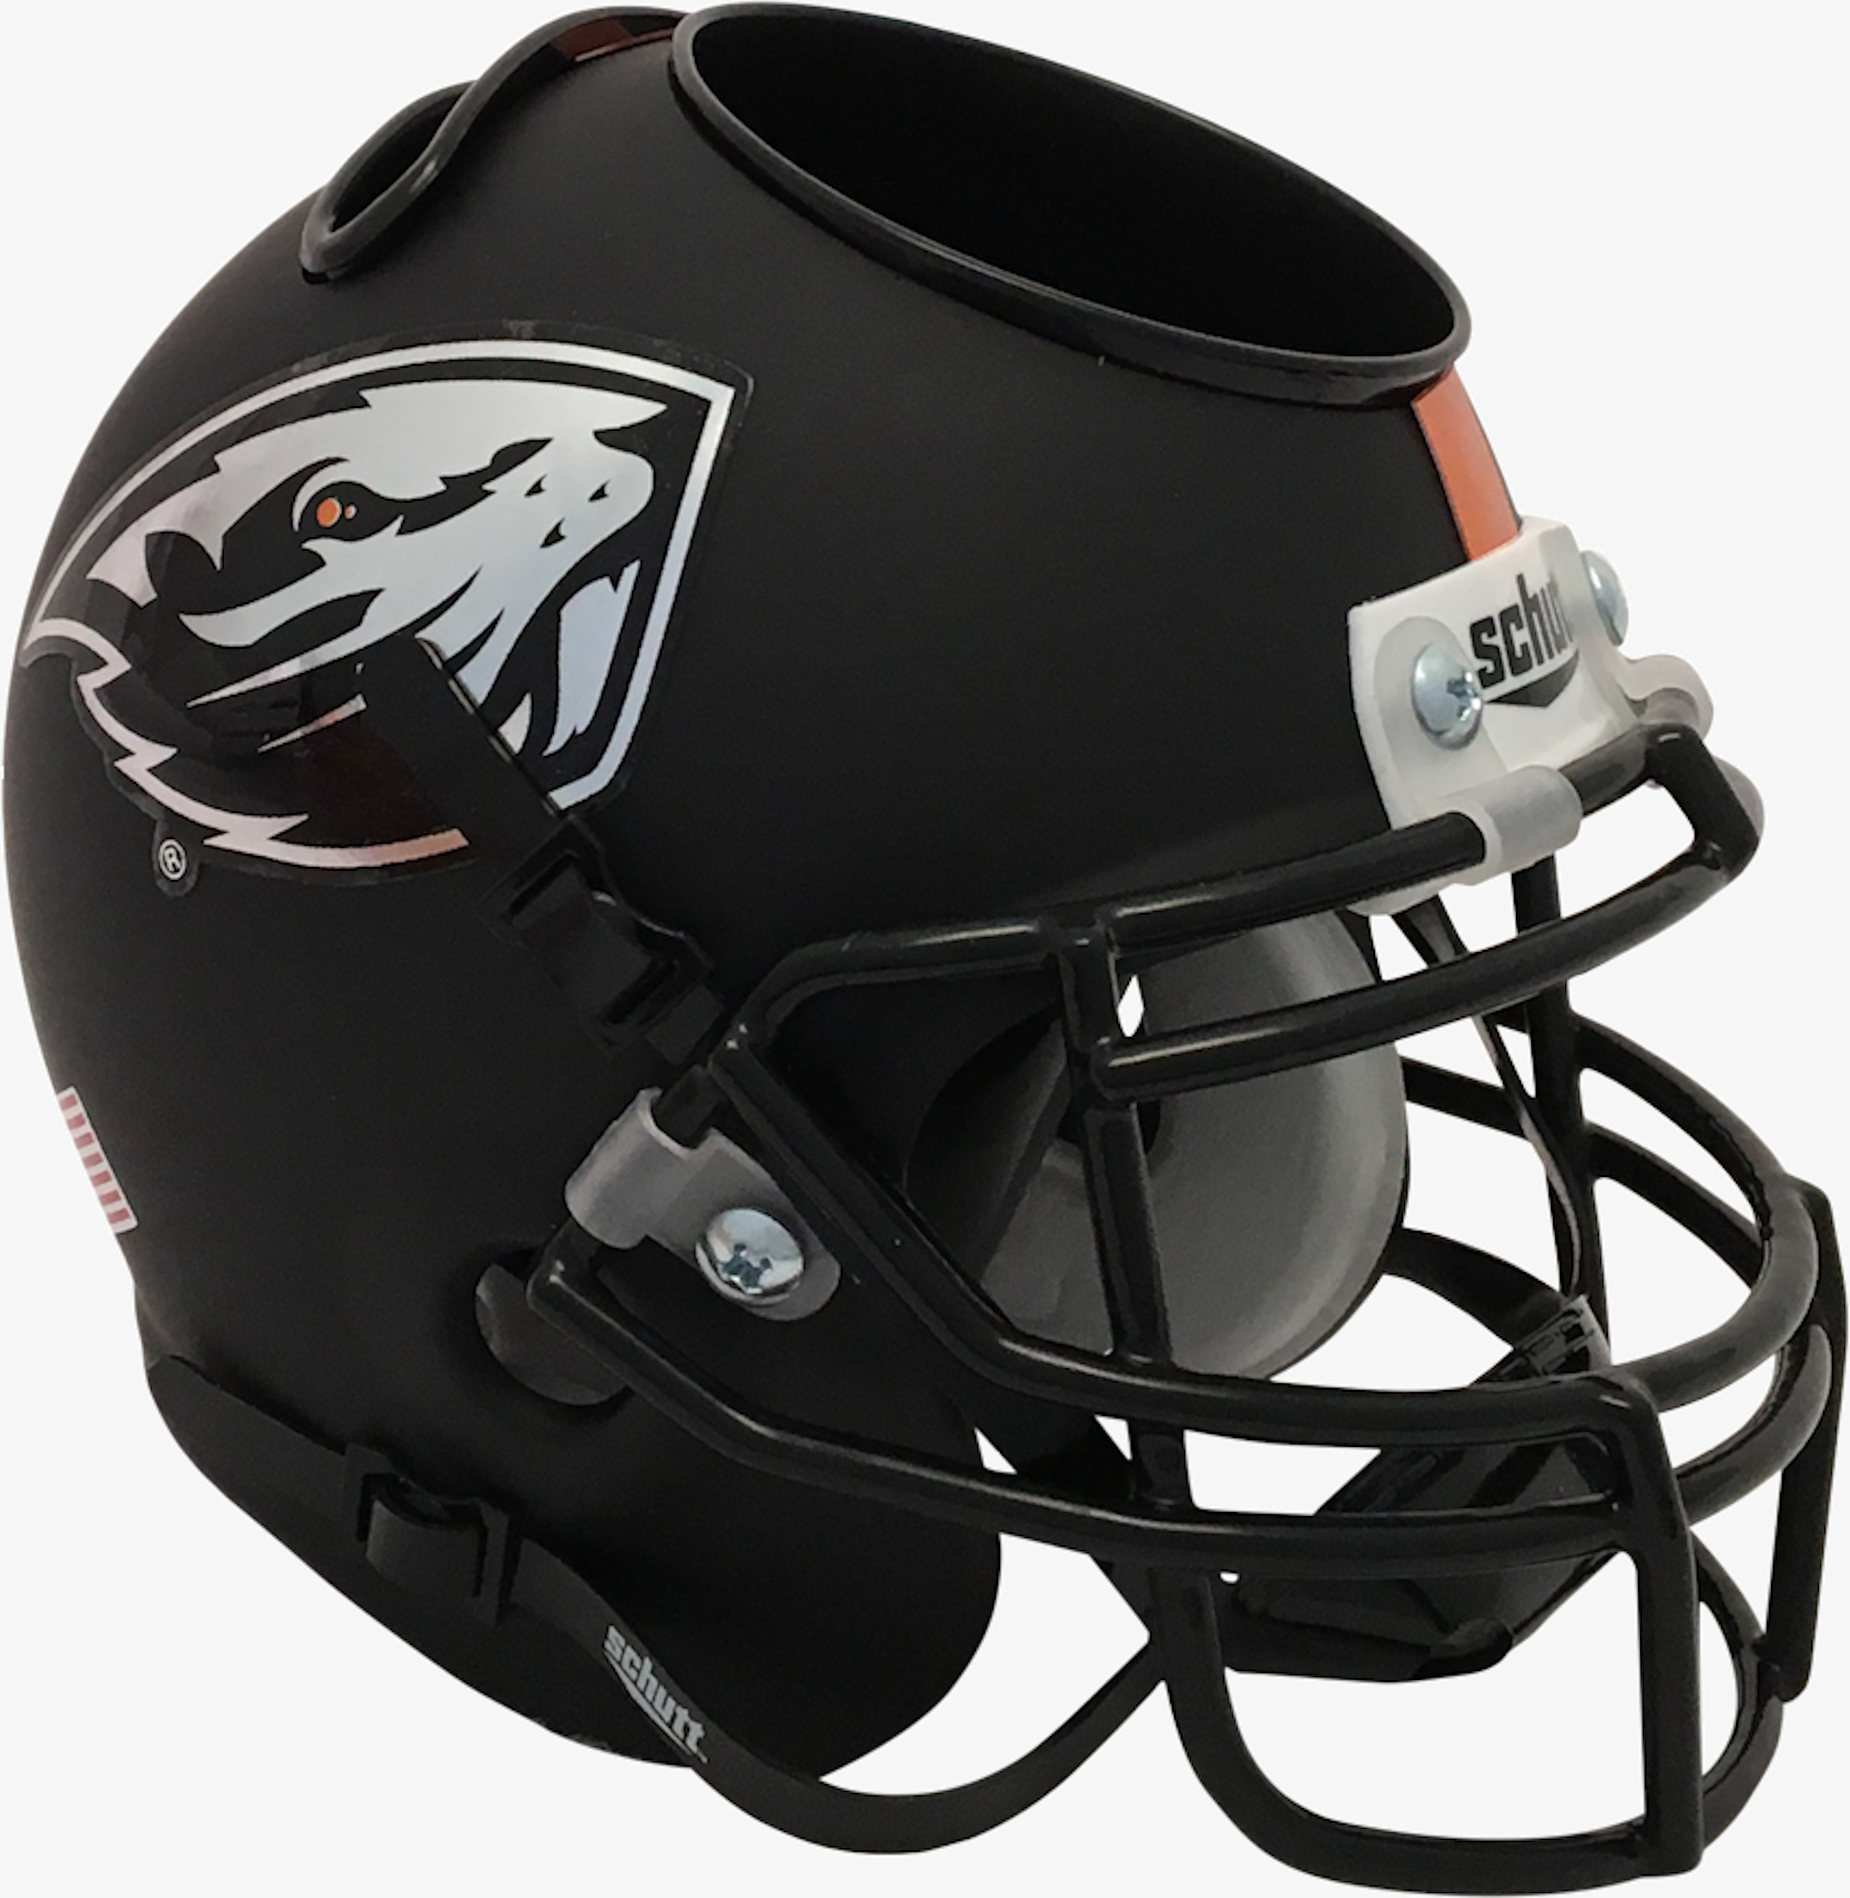 Oregon State Beavers Miniature Football Helmet Desk Caddy <B>Matte Black</B>